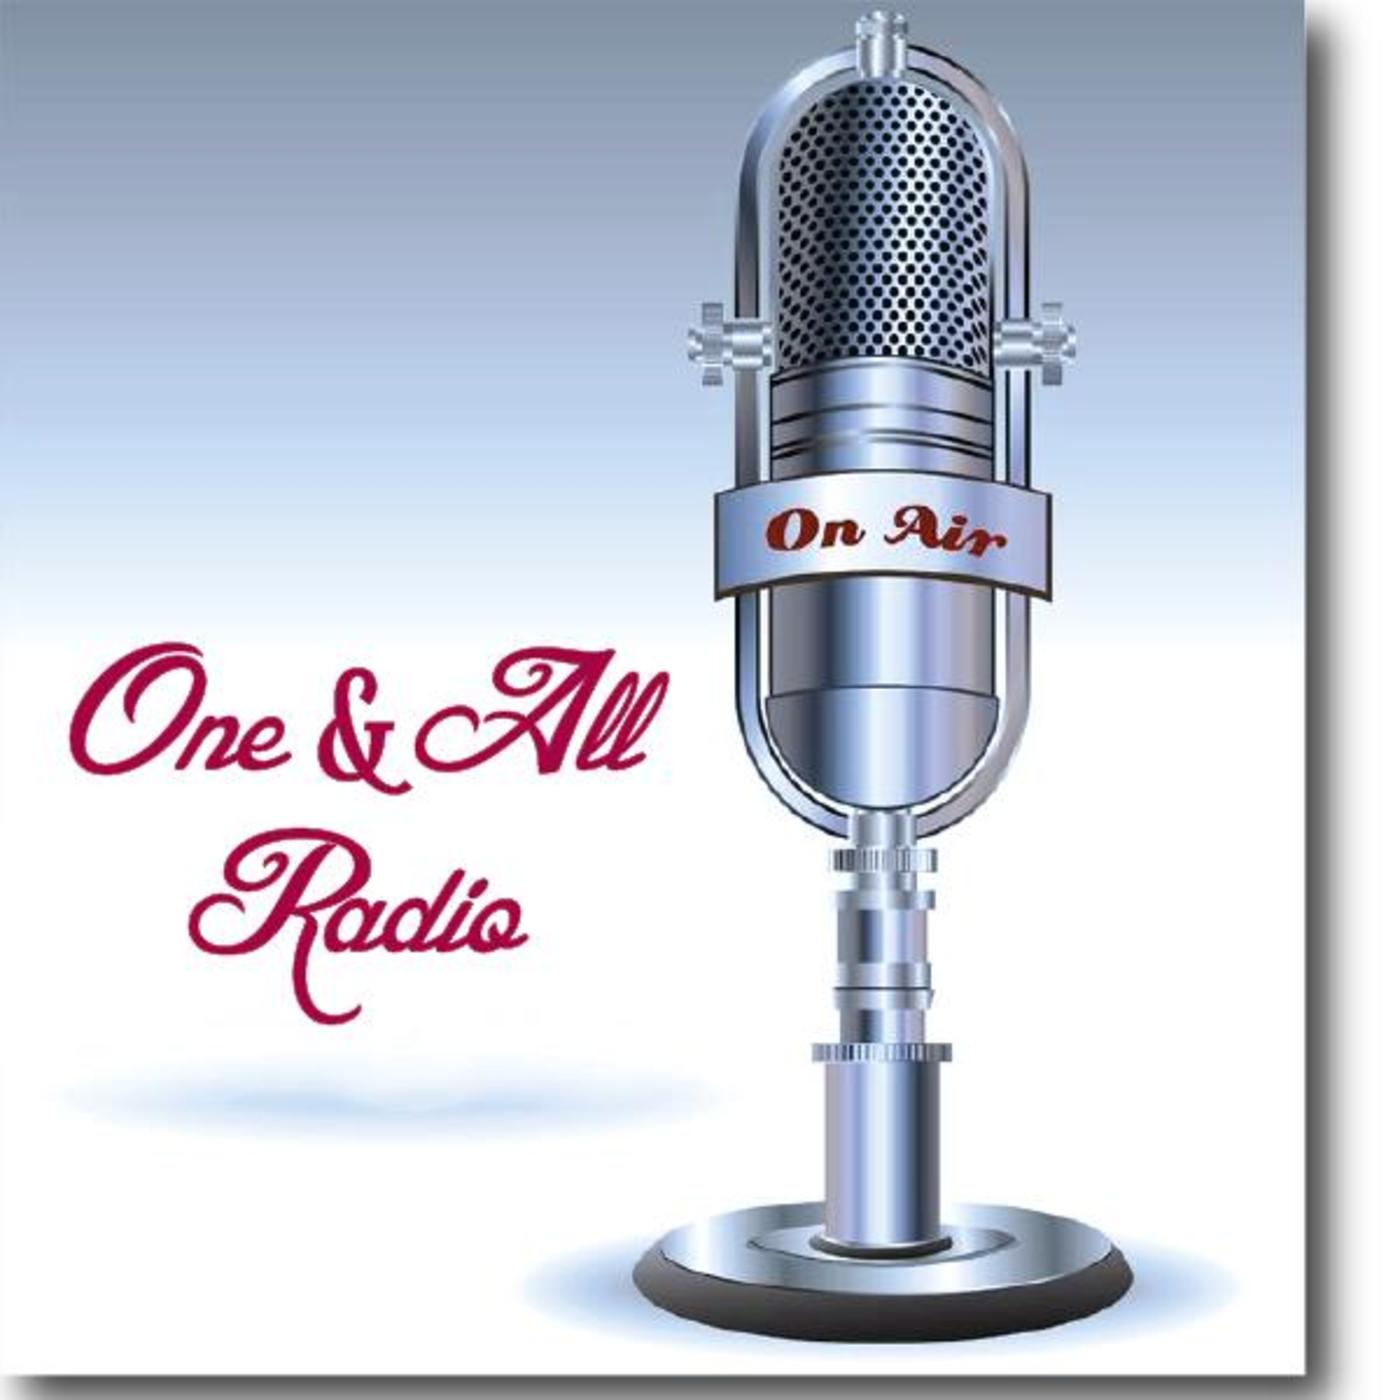 One & All Radio